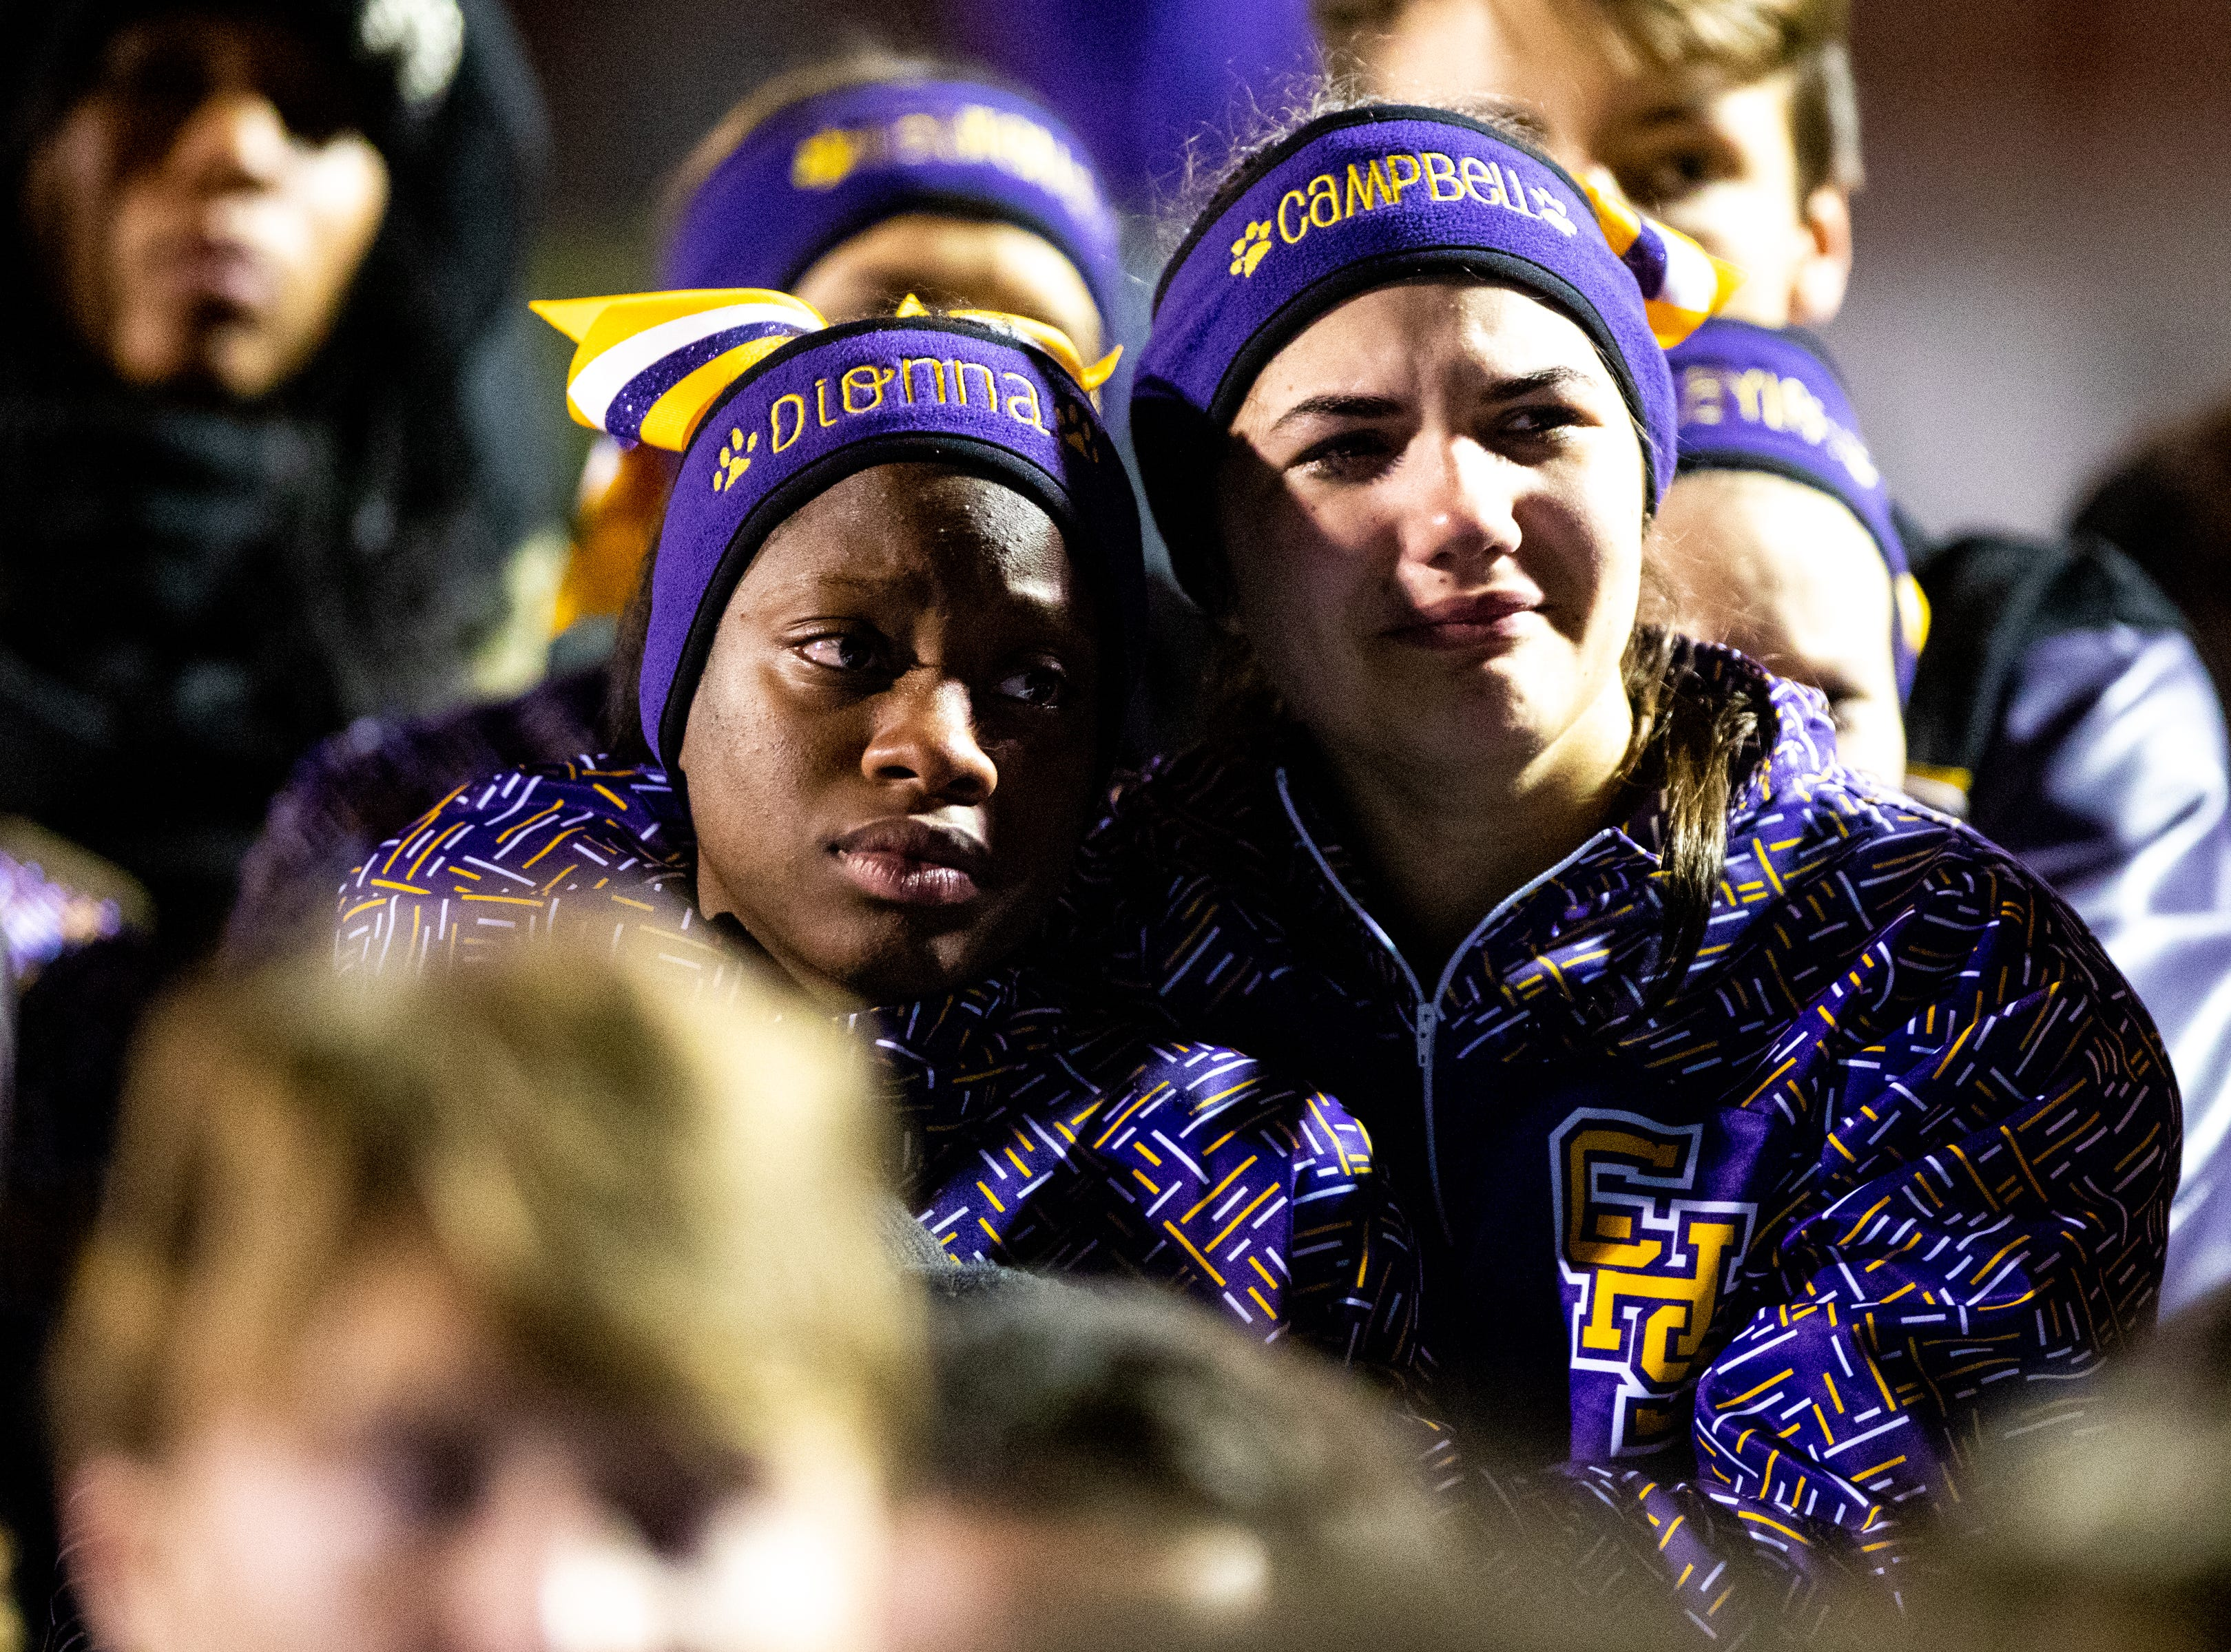 Clarksville cheerleaders comfort each other as they cry and listen to the senior players speak after losing in overtime at Clarksville High Friday, Nov. 2, 2018, in Clarksville, Tenn.